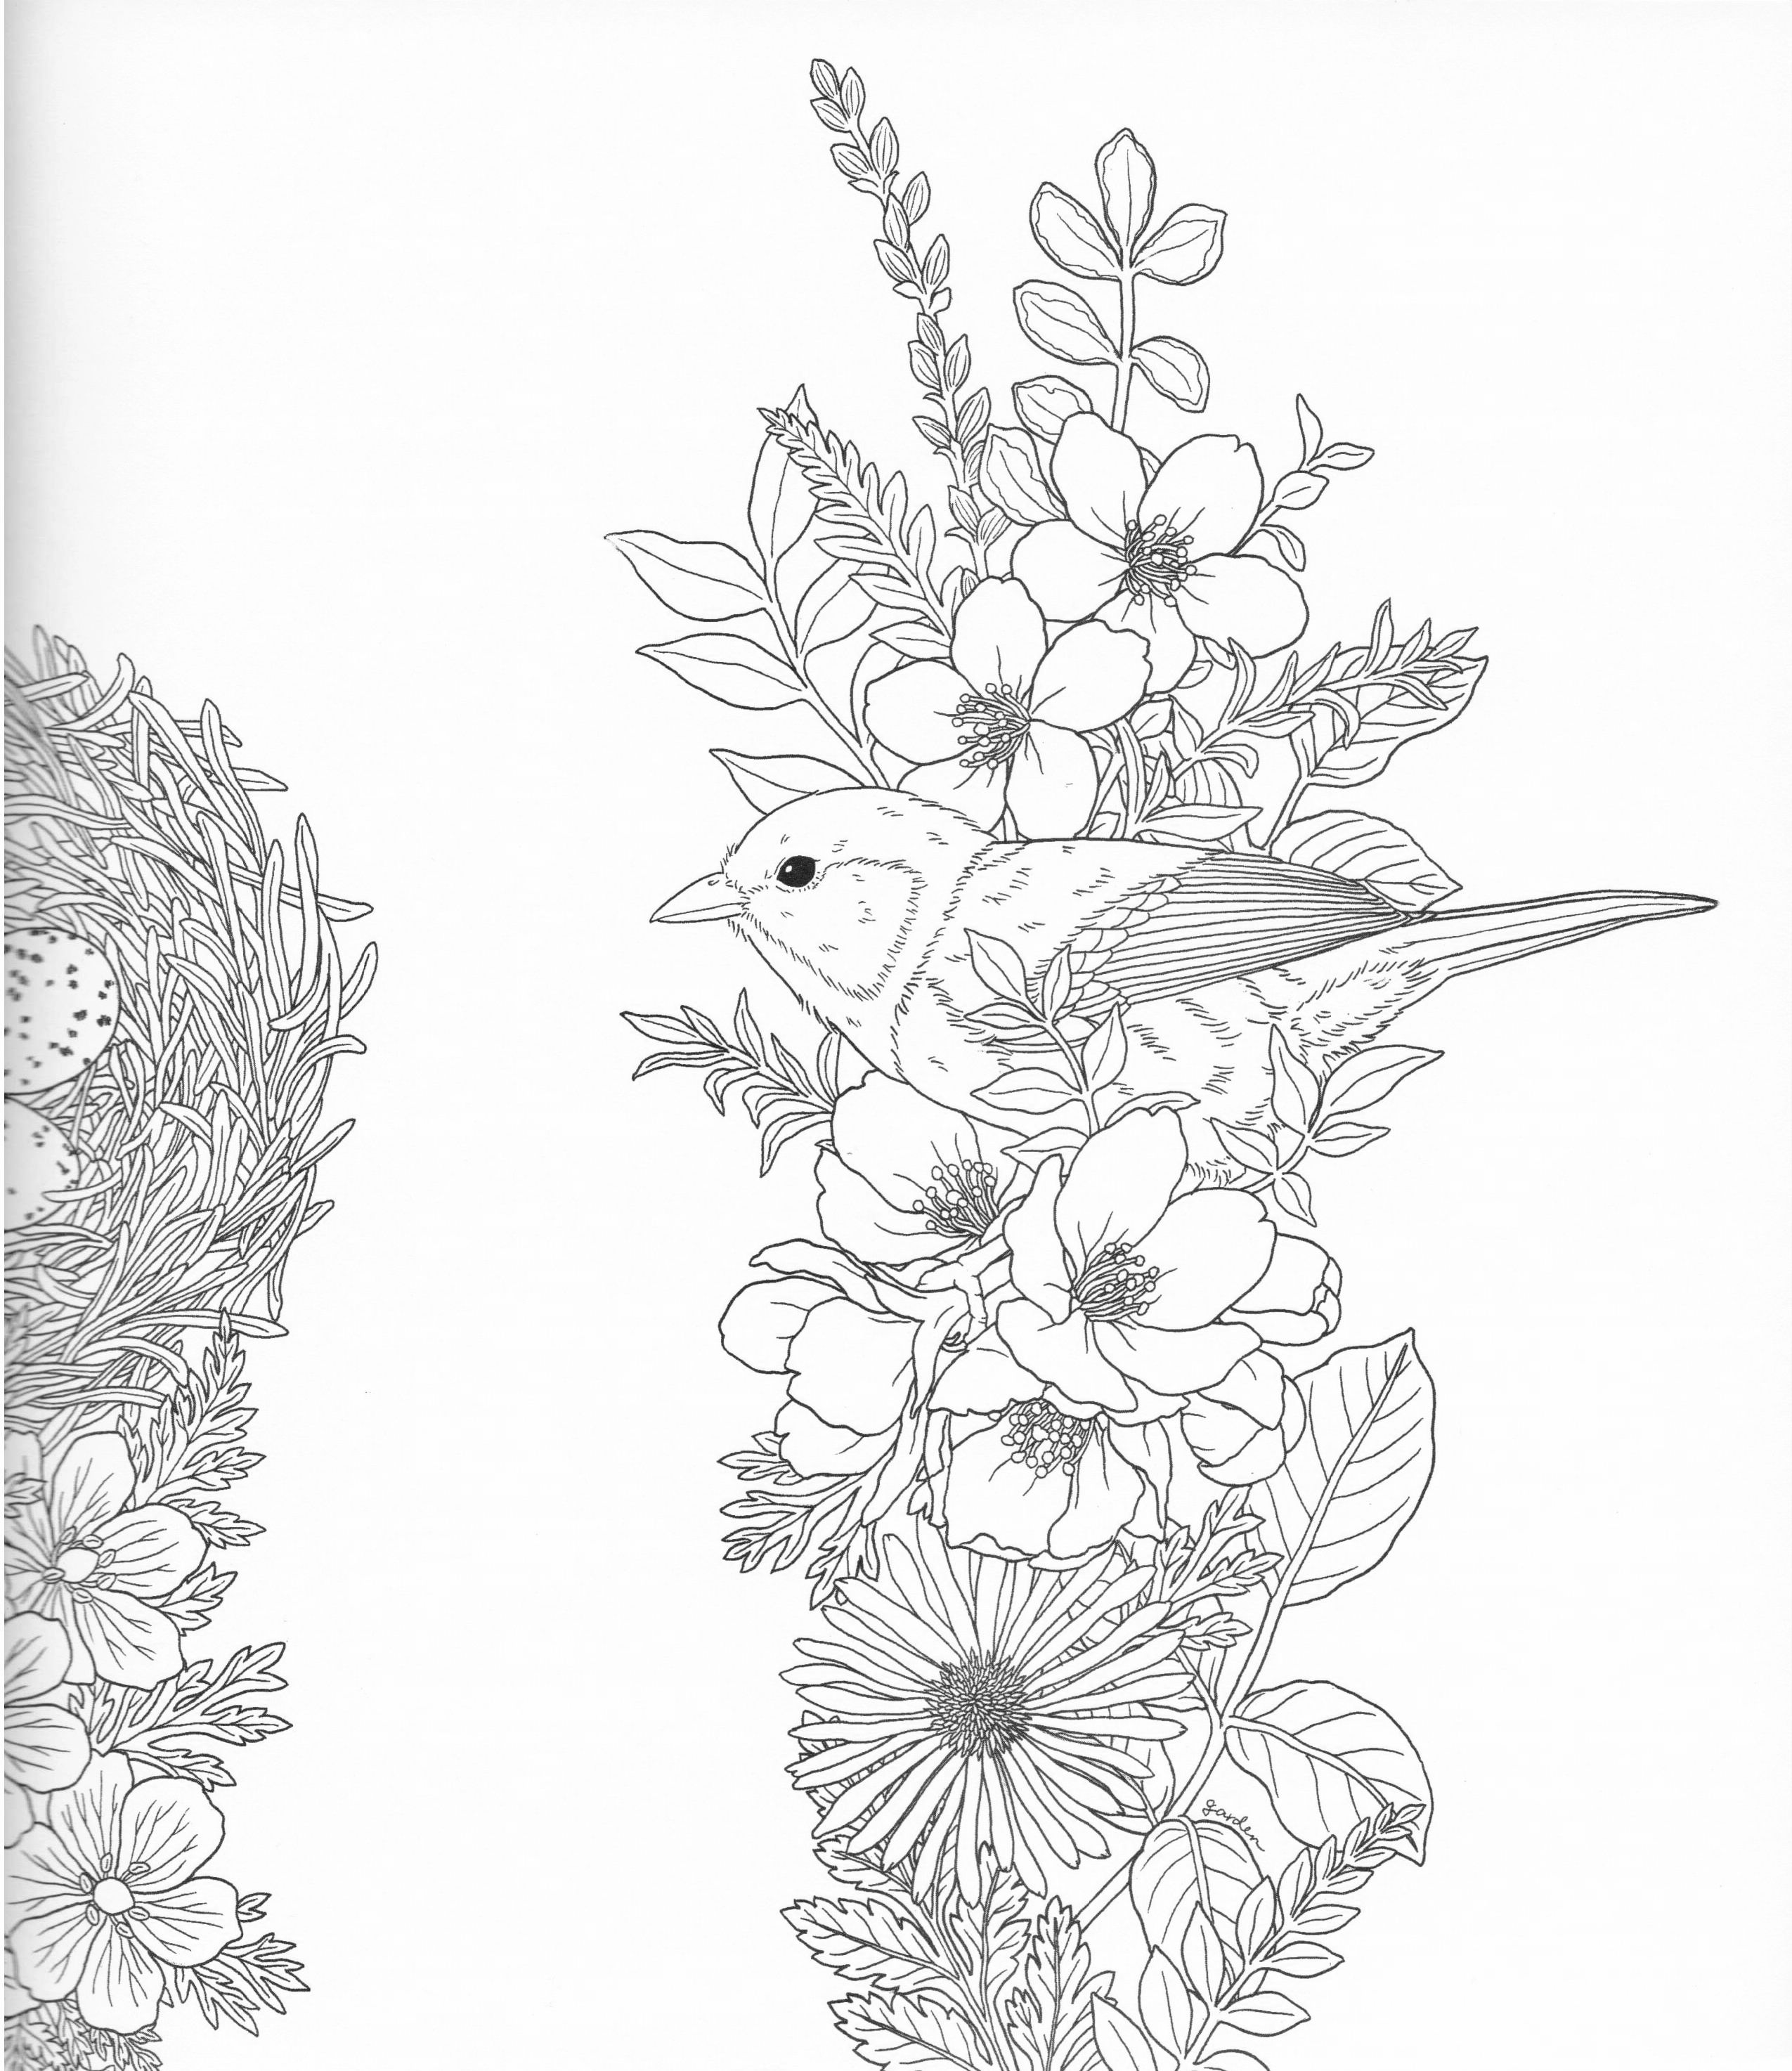 Drawing pages of nature - Harmony Of Nature Adult Coloring Book Pg4